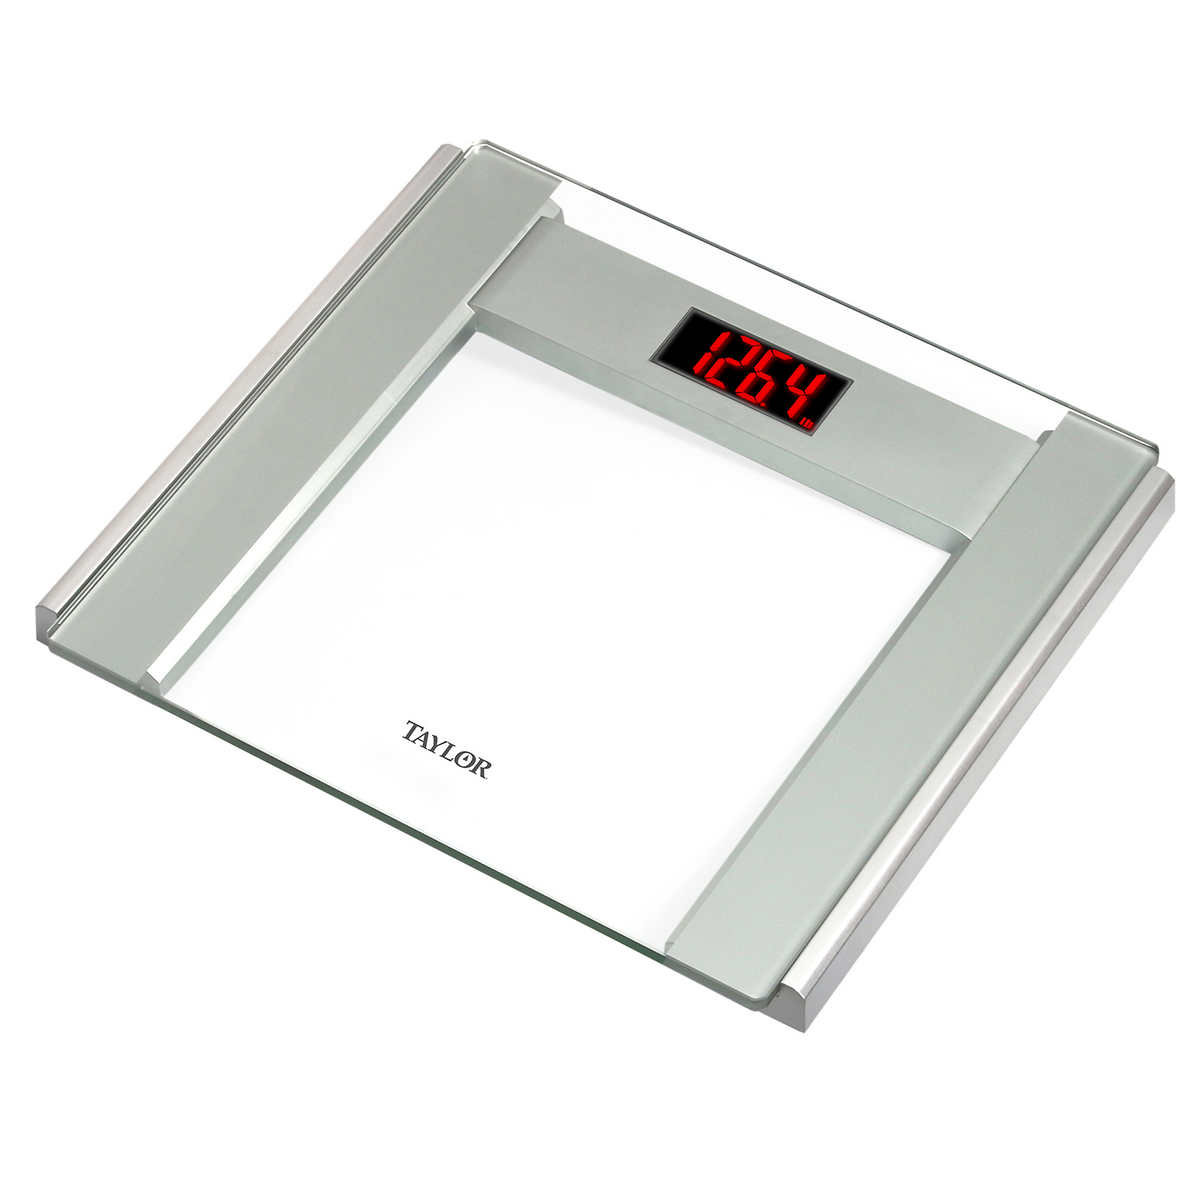 Glass bathroom scales - Taylor Digital Glass Bathroom Scale Item 915594 Click To Zoom